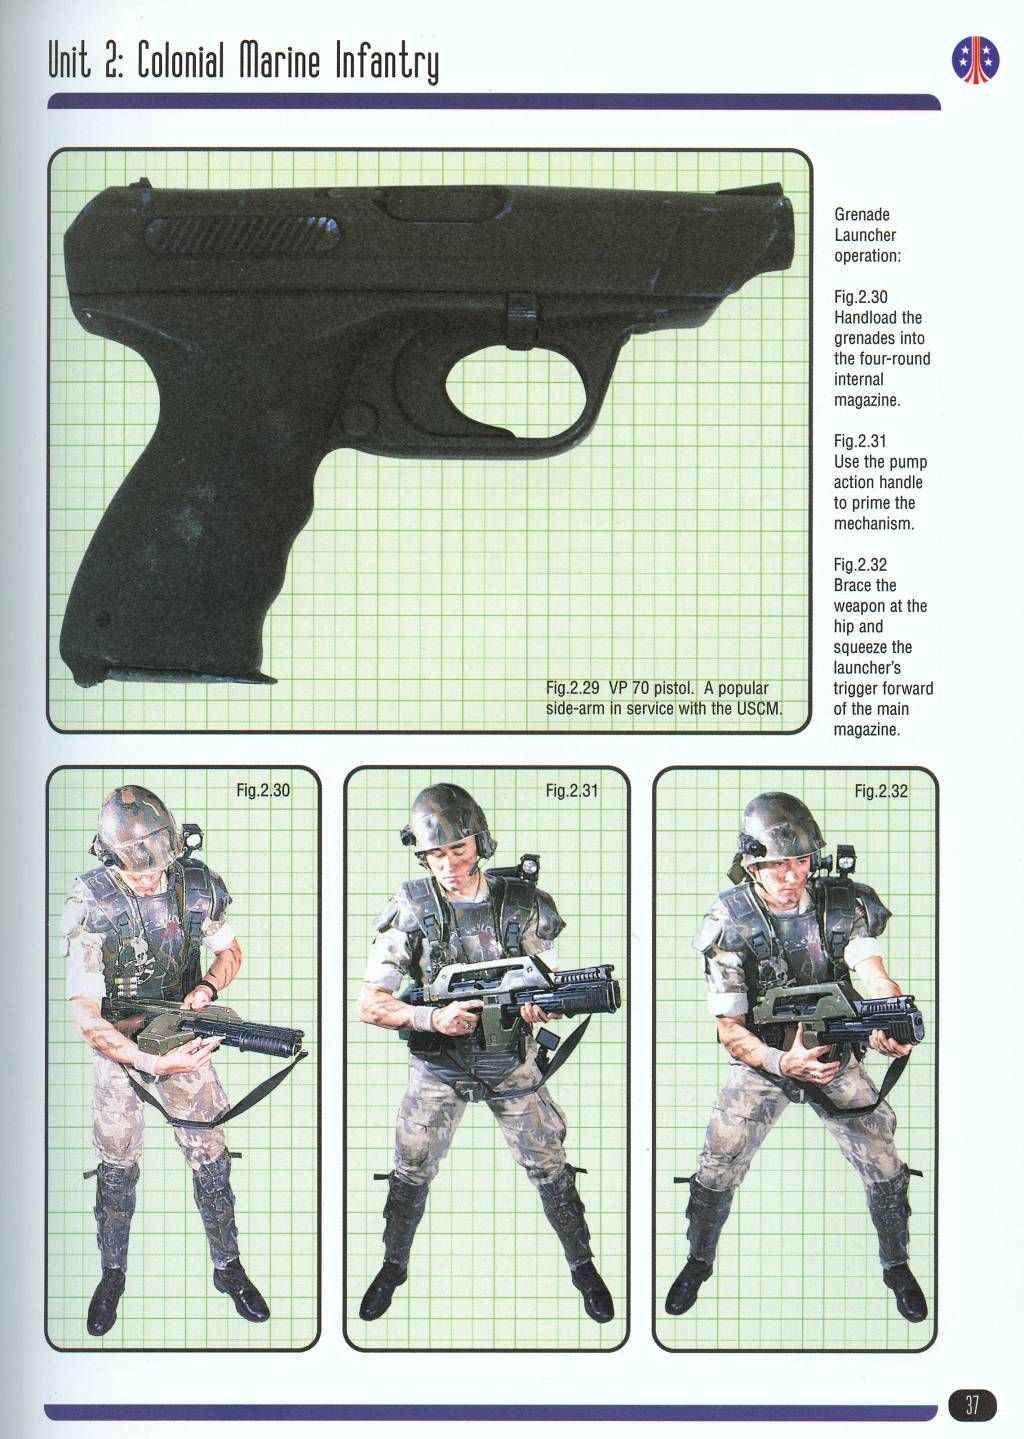 Aliens: The H&K 88 Mod 4 pistol looks similar to the their